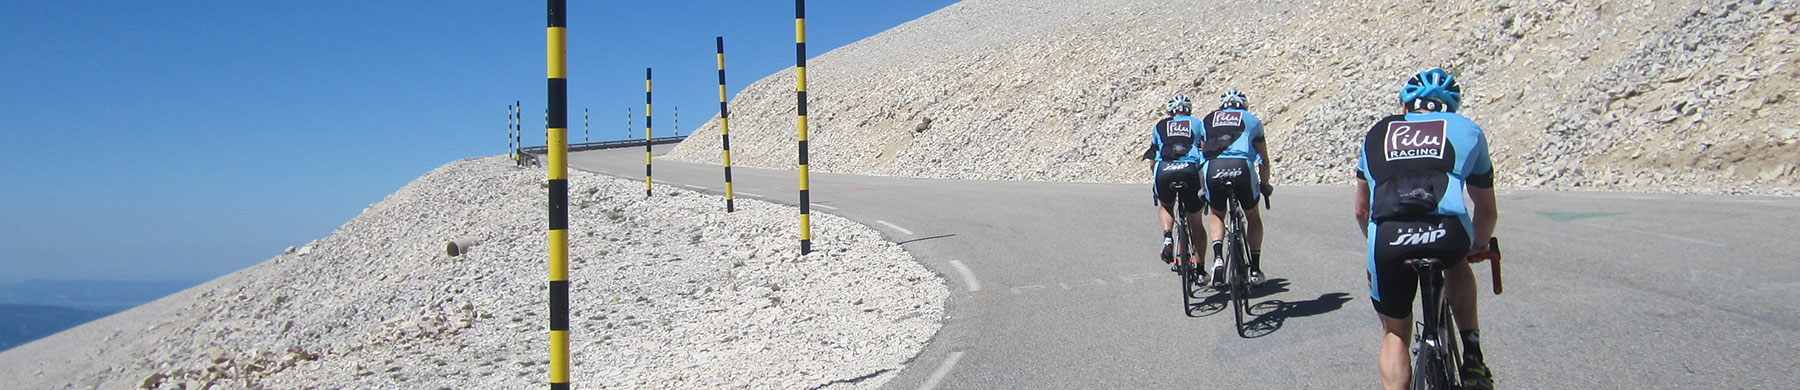 Riding-in-Europe-Mount-Ventoux.jpg